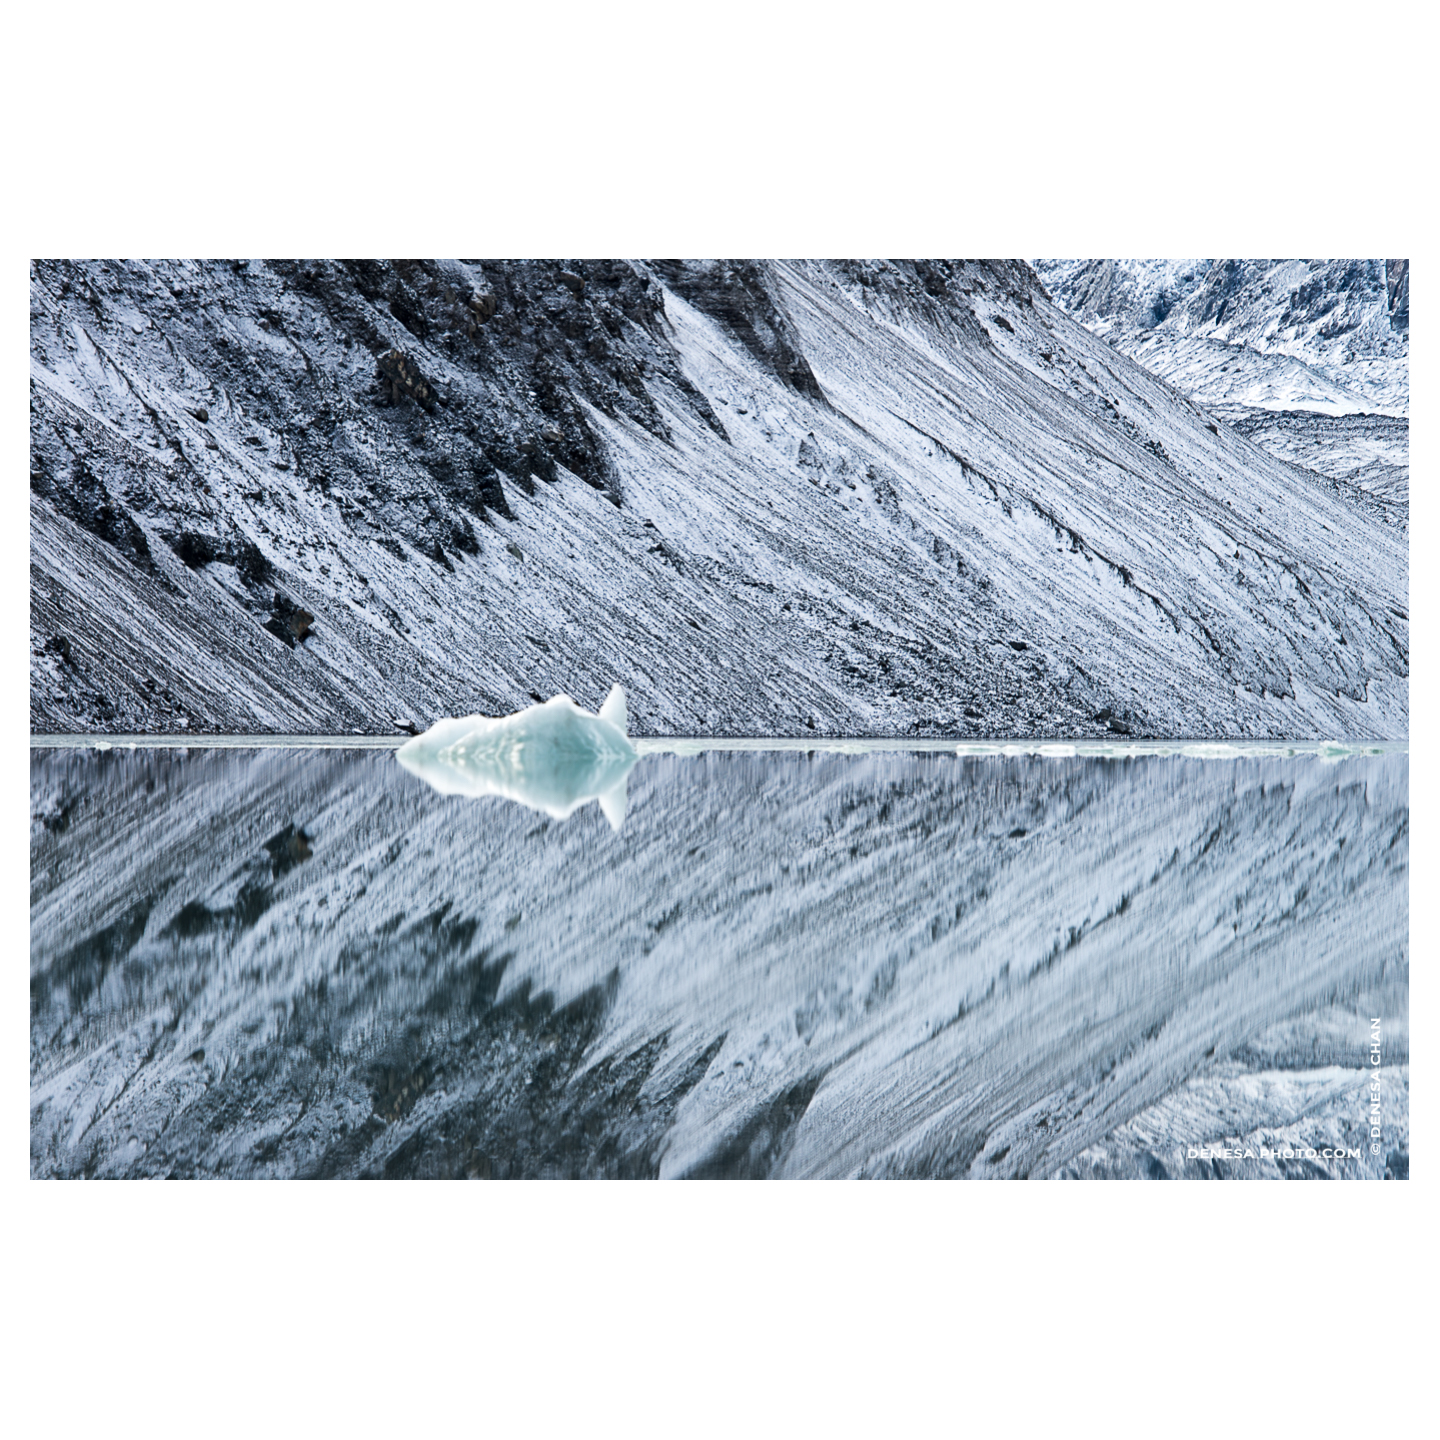 Glacial_Reflection_Arrow_Snow_Geometry_Iceberg_New_Zealand_Winter_©_Denesa_Chan_Photography_5123